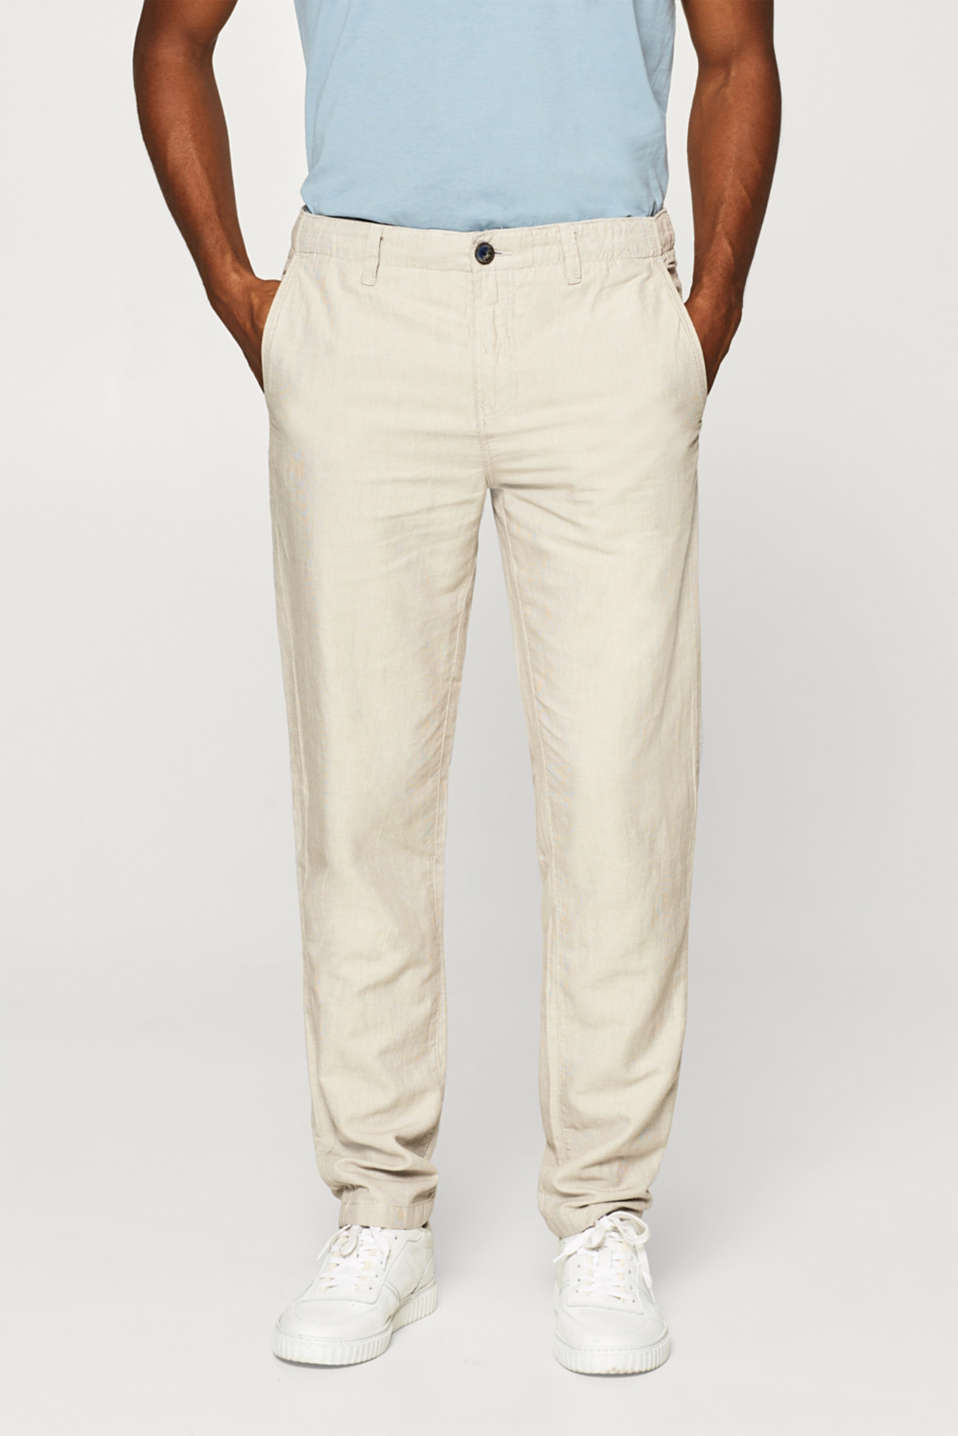 Esprit - Trousers with linen and a fine pattern